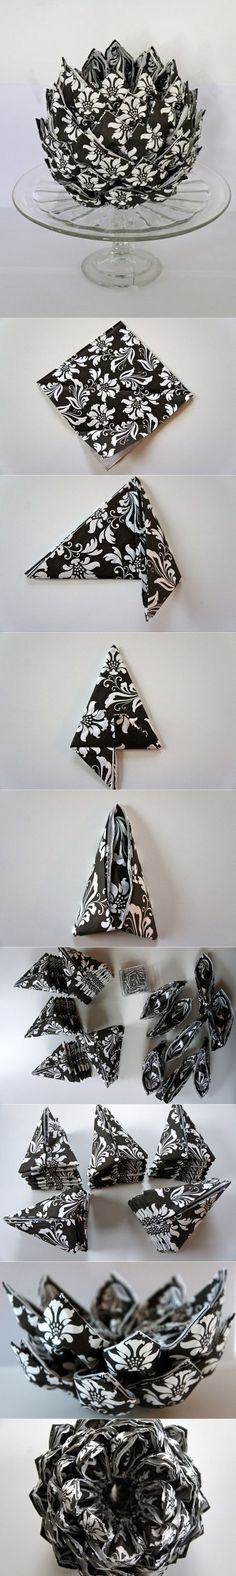 Napkin Folding Techniques That Will Transform Your Dinner Table Architecture & Design Napkin Folding, Paper Folding, Diy And Crafts, Arts And Crafts, Paper Crafts, Teen Crafts, Origami Paper, Lotus Origami, Oragami